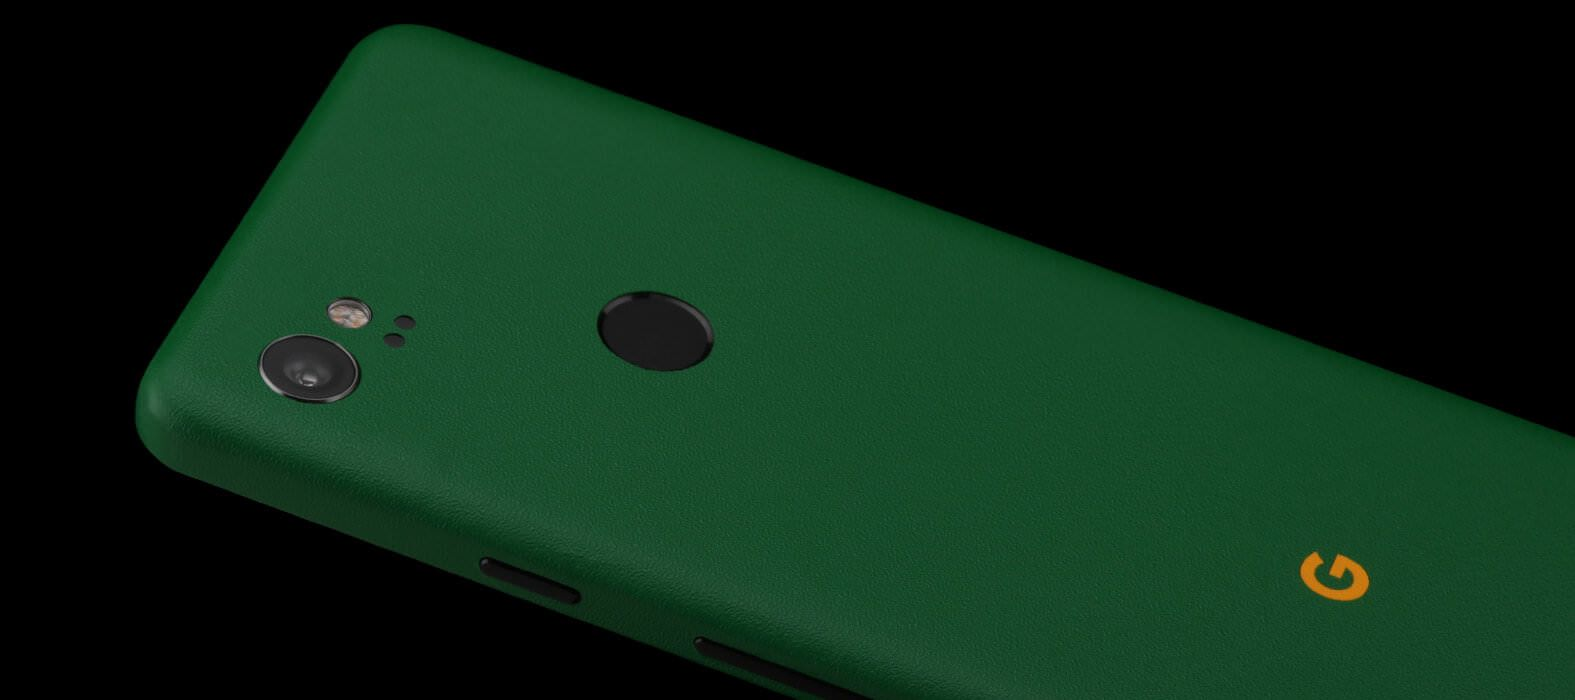 Pixel 2 XL Skins Sandstone Green Wraps & Decals